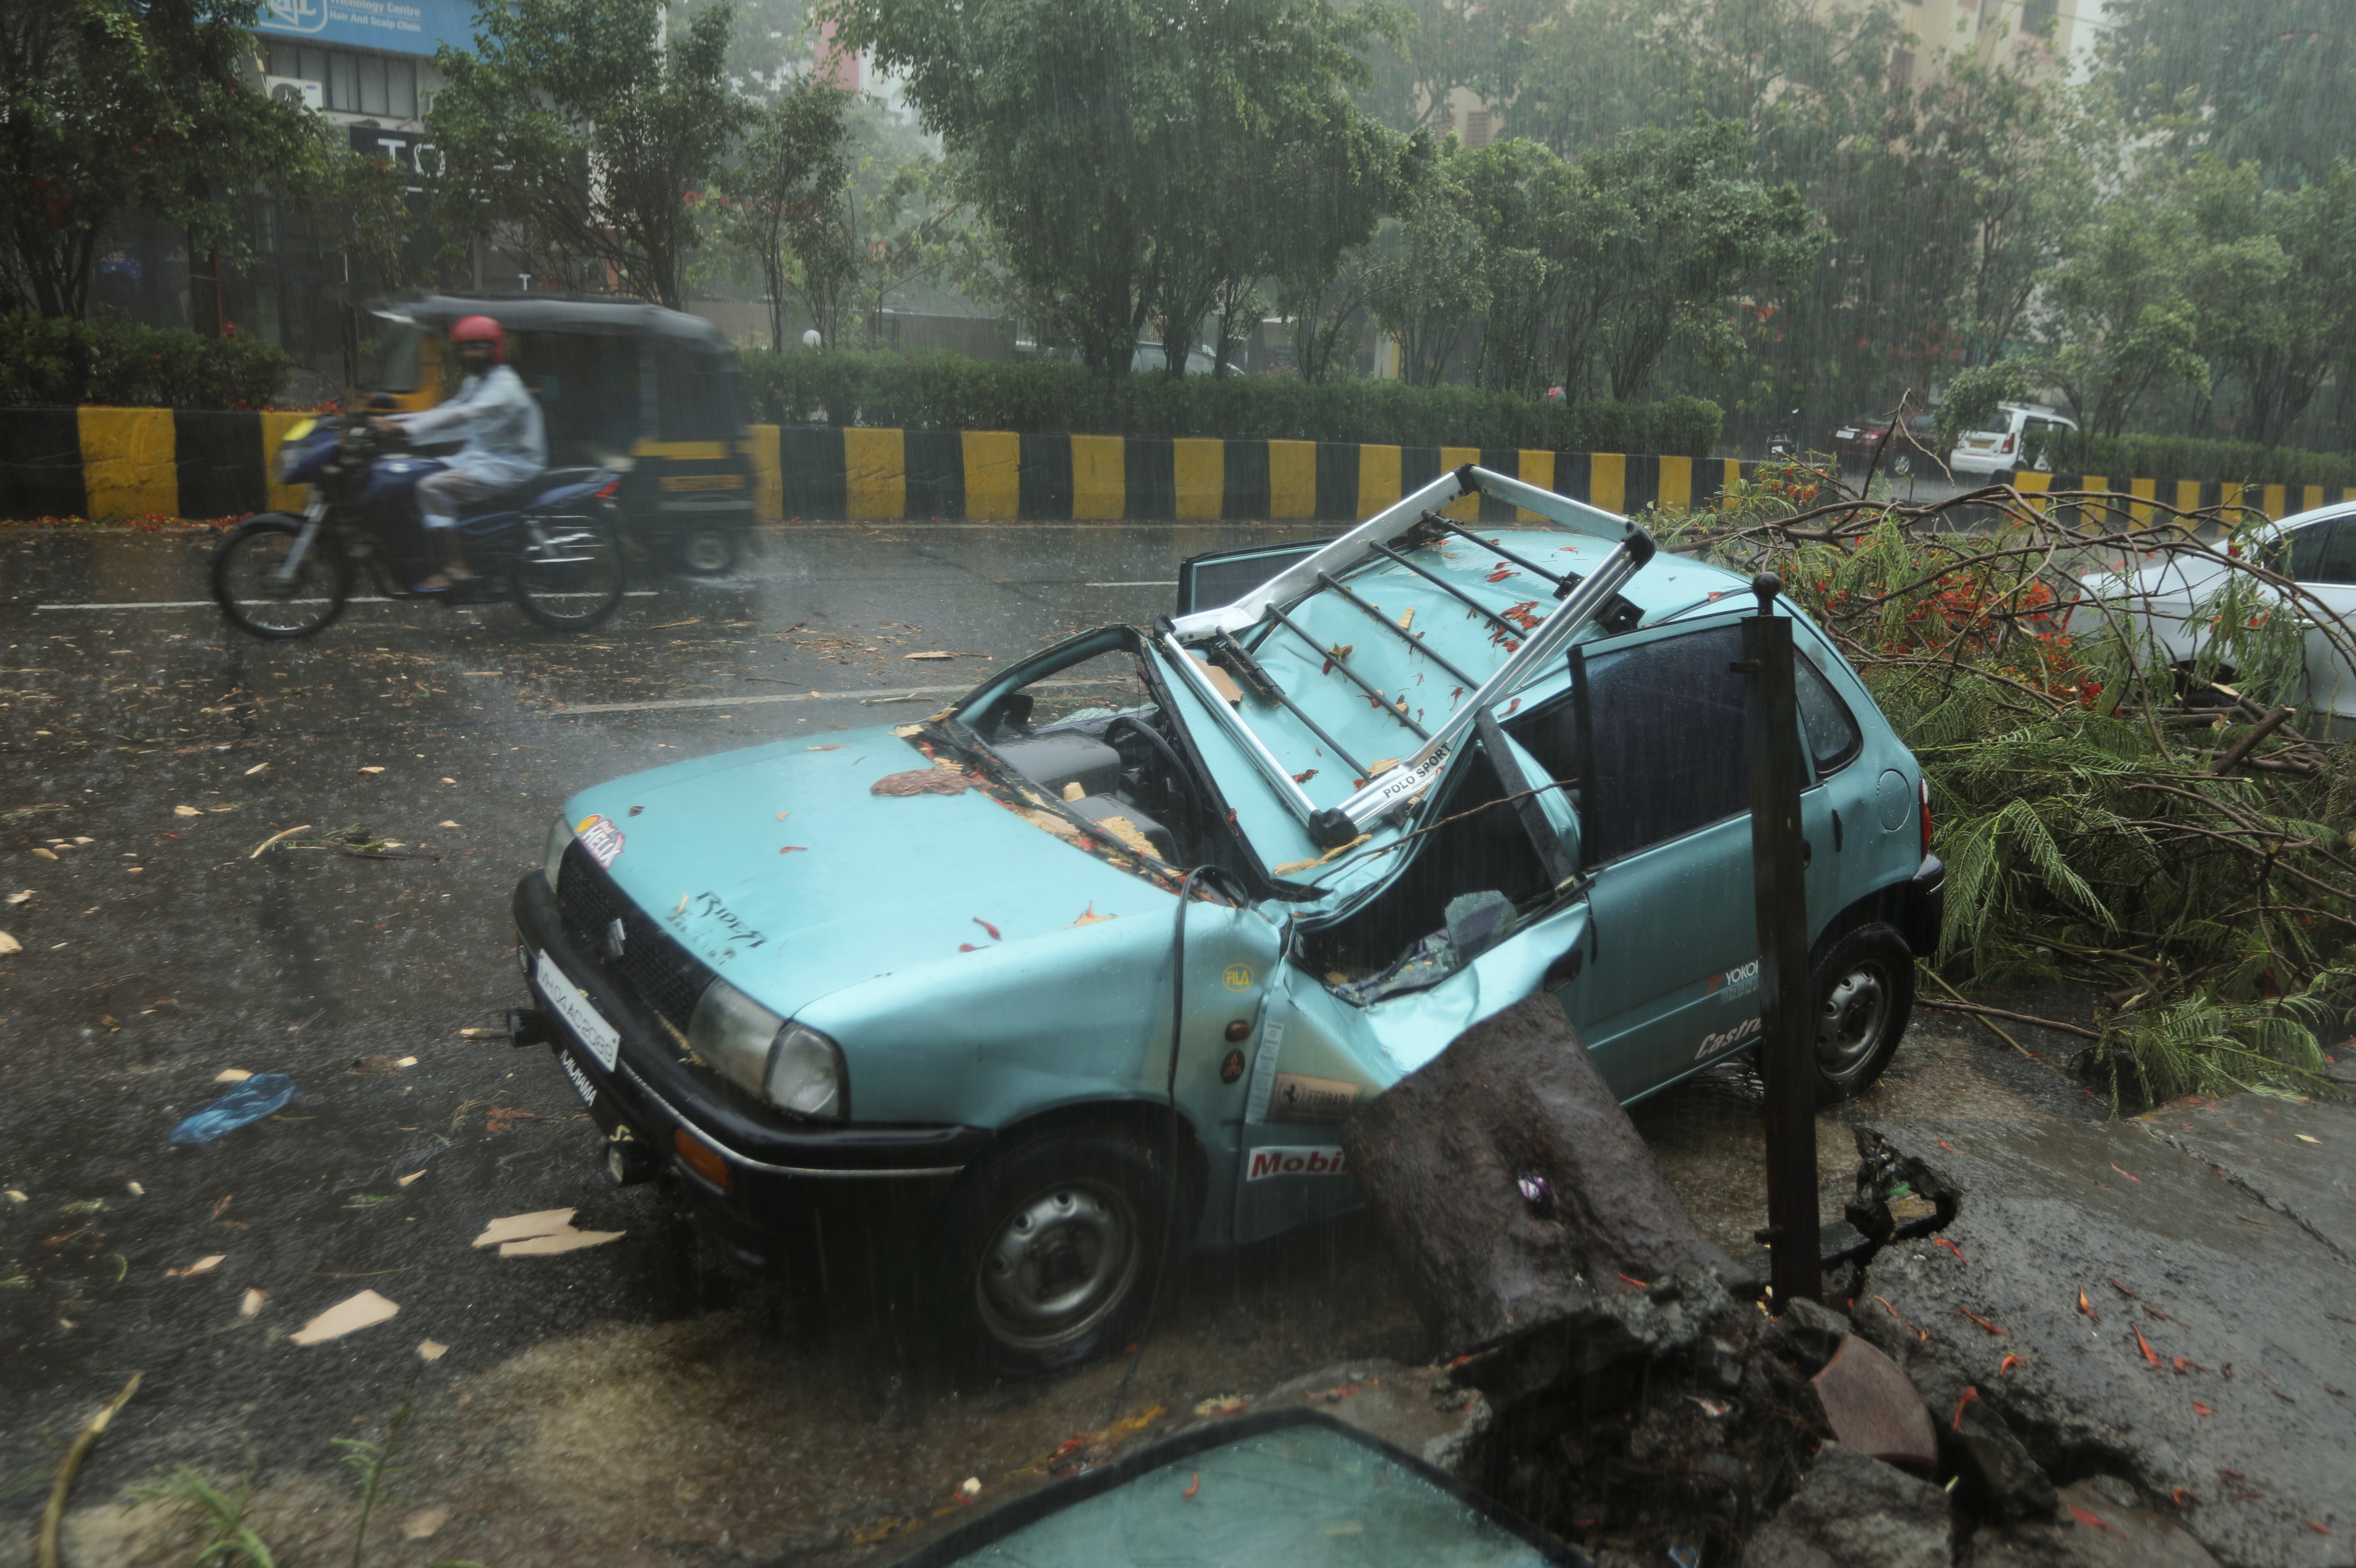 A damaged car is seen on a road after a tree fell on it due to strong winds caused by Cyclone Tauktae in Mumbai, India, May 17, 2021. REUTERS/Francis Mascarenhas